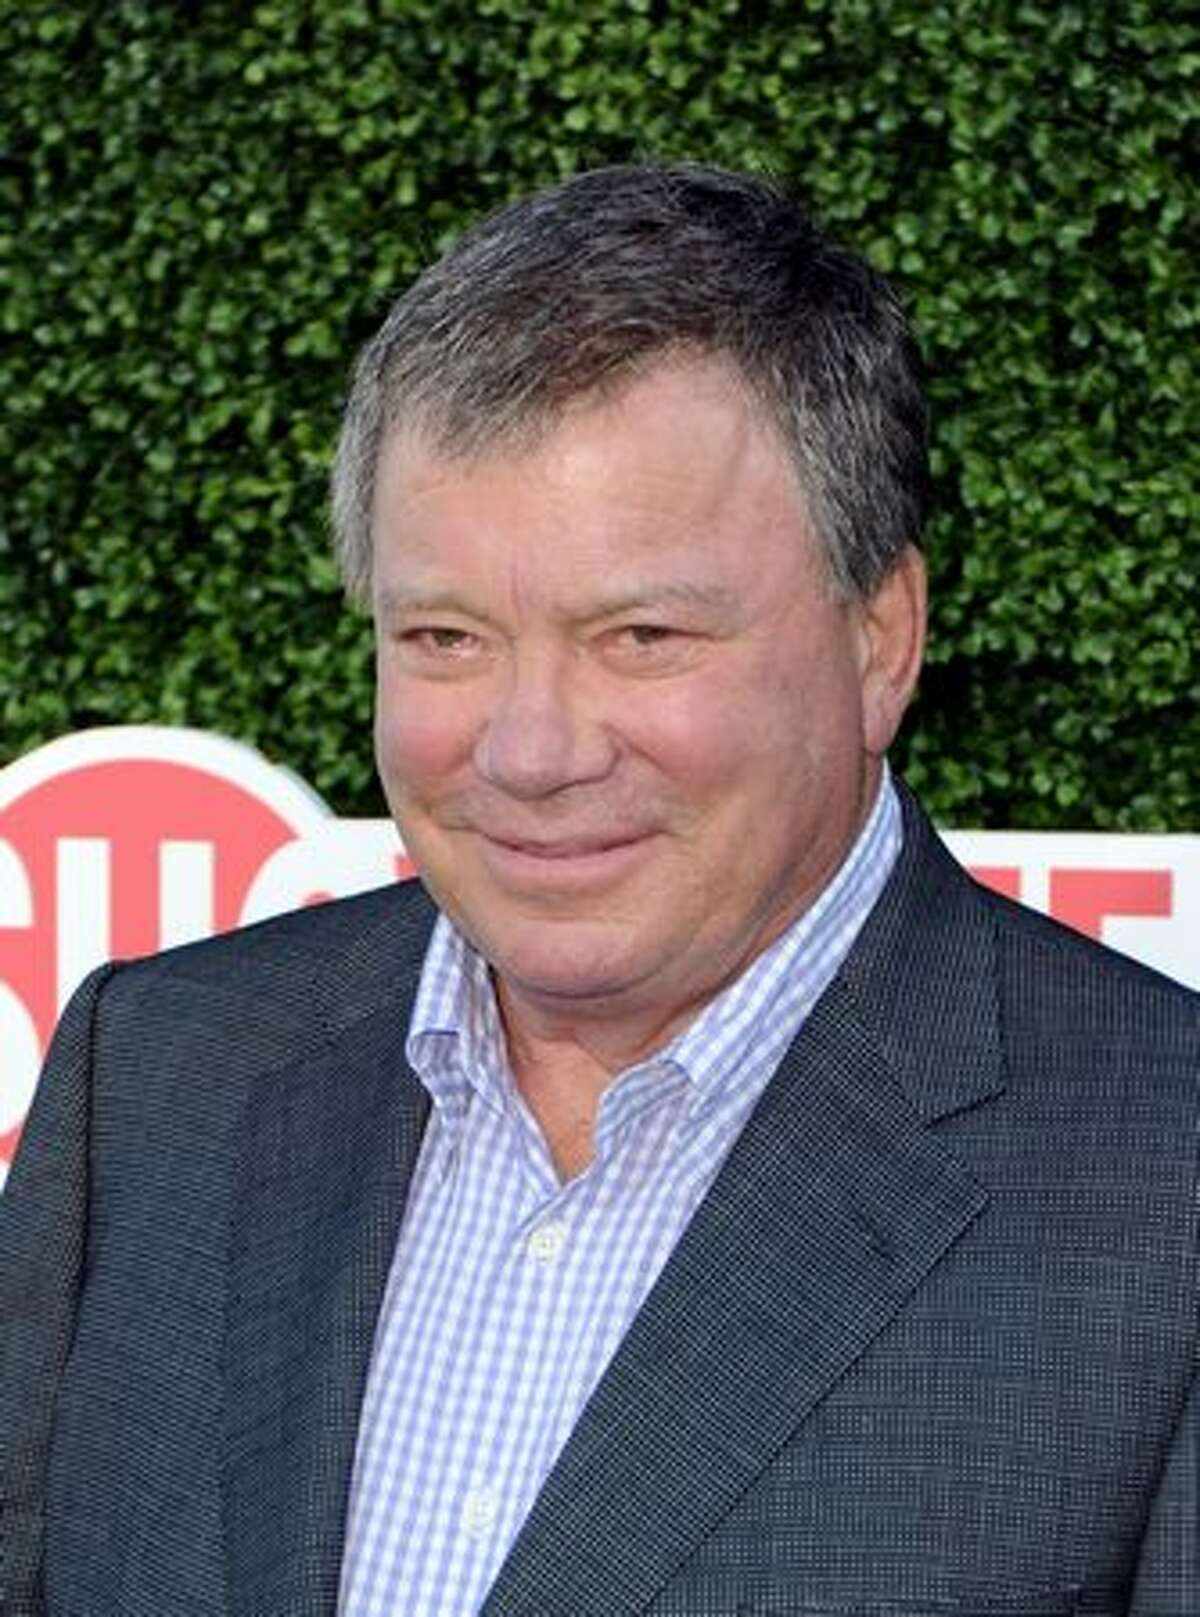 William Shatner turned 80 on Tuesday, March 22. Here's a gallery of celebrities 65 and up who have boldly aged in the public spotlight.